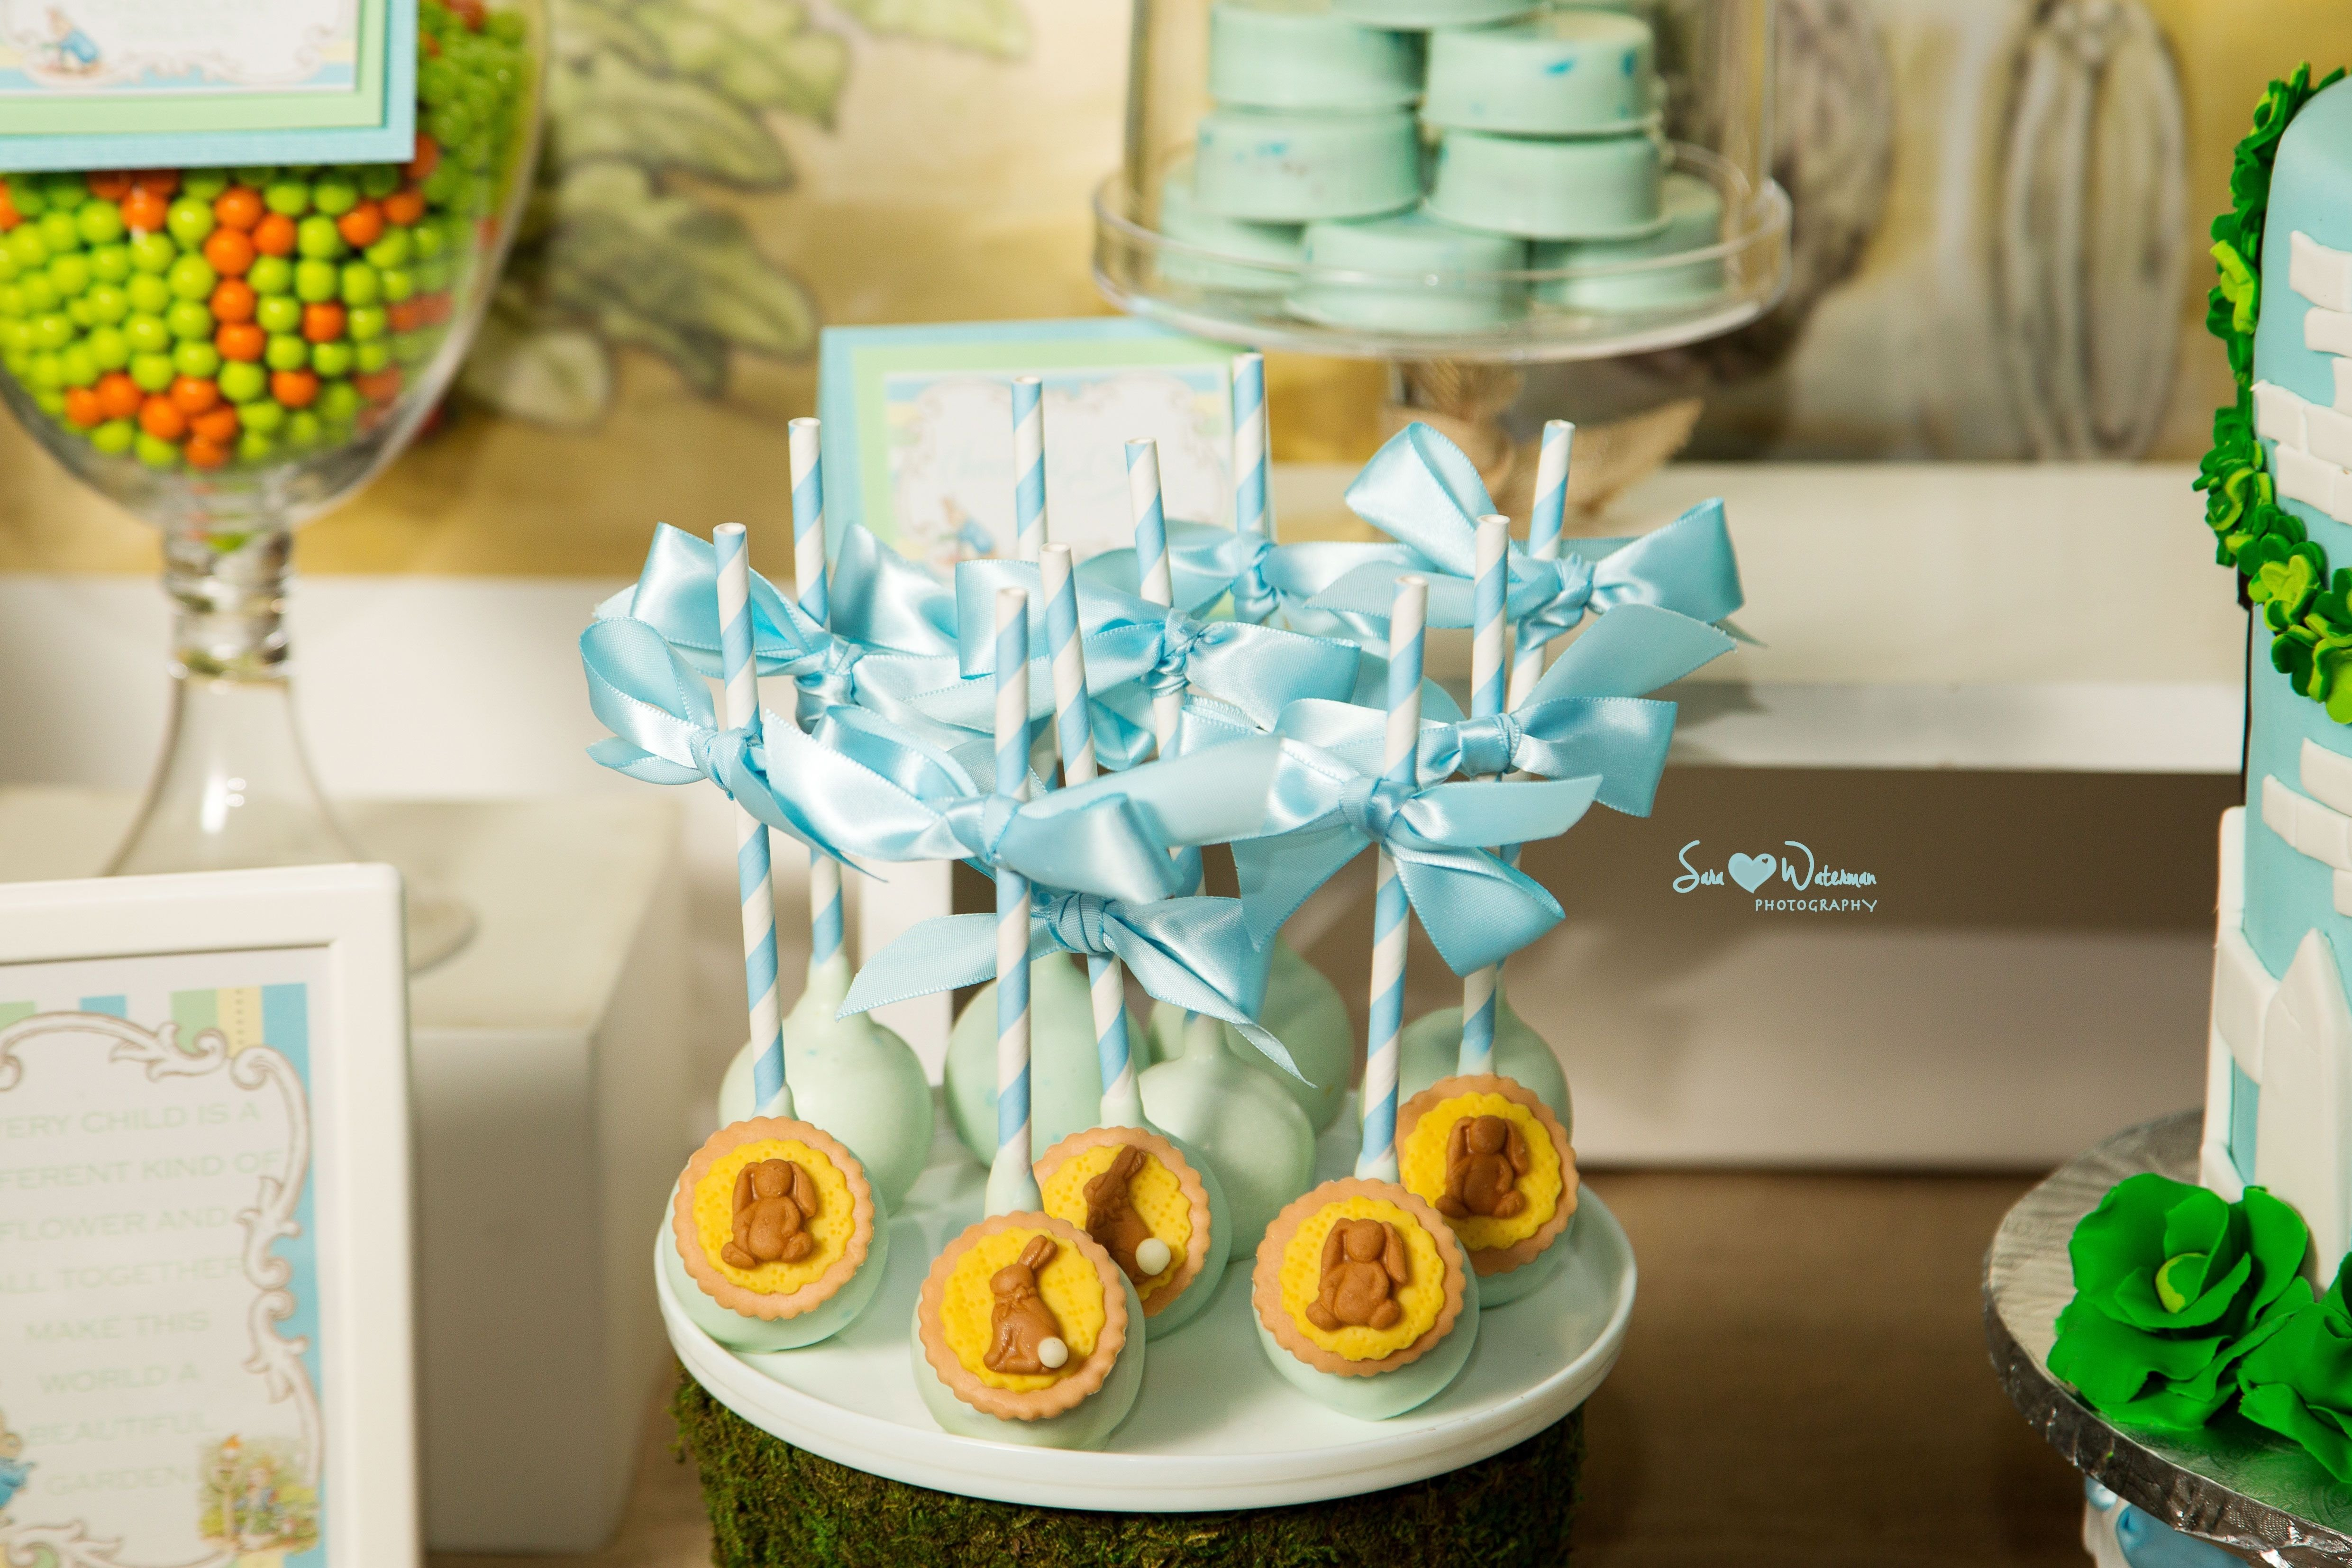 10 Perfect Peter Rabbit Baby Shower Ideas peter rabbit easter bunny baby shower dessert table with themed 2020